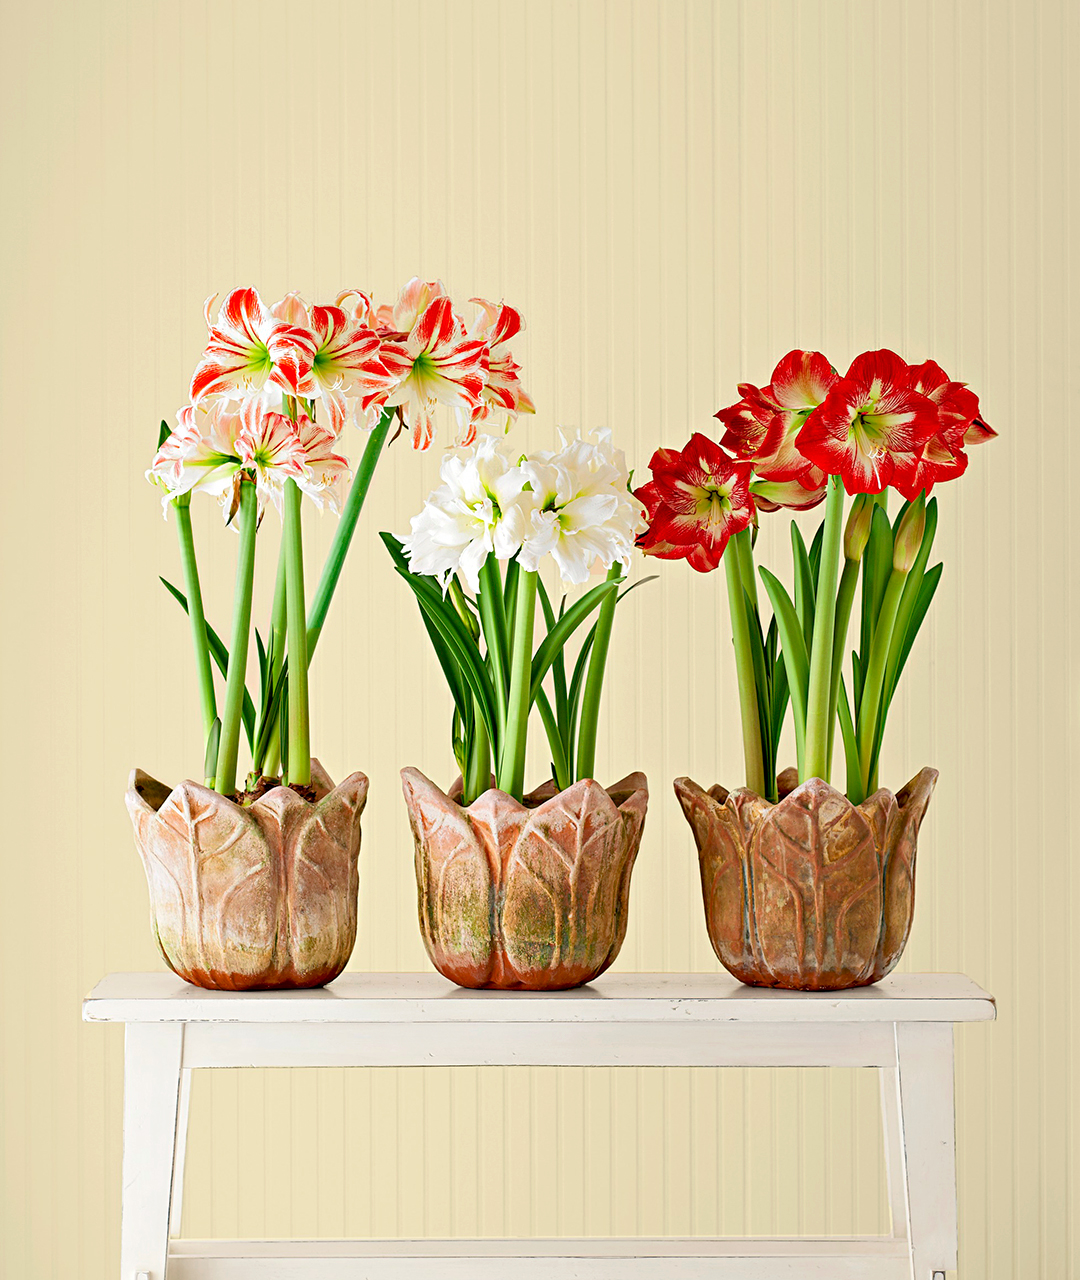 How to Plant Amaryllis in a Pot